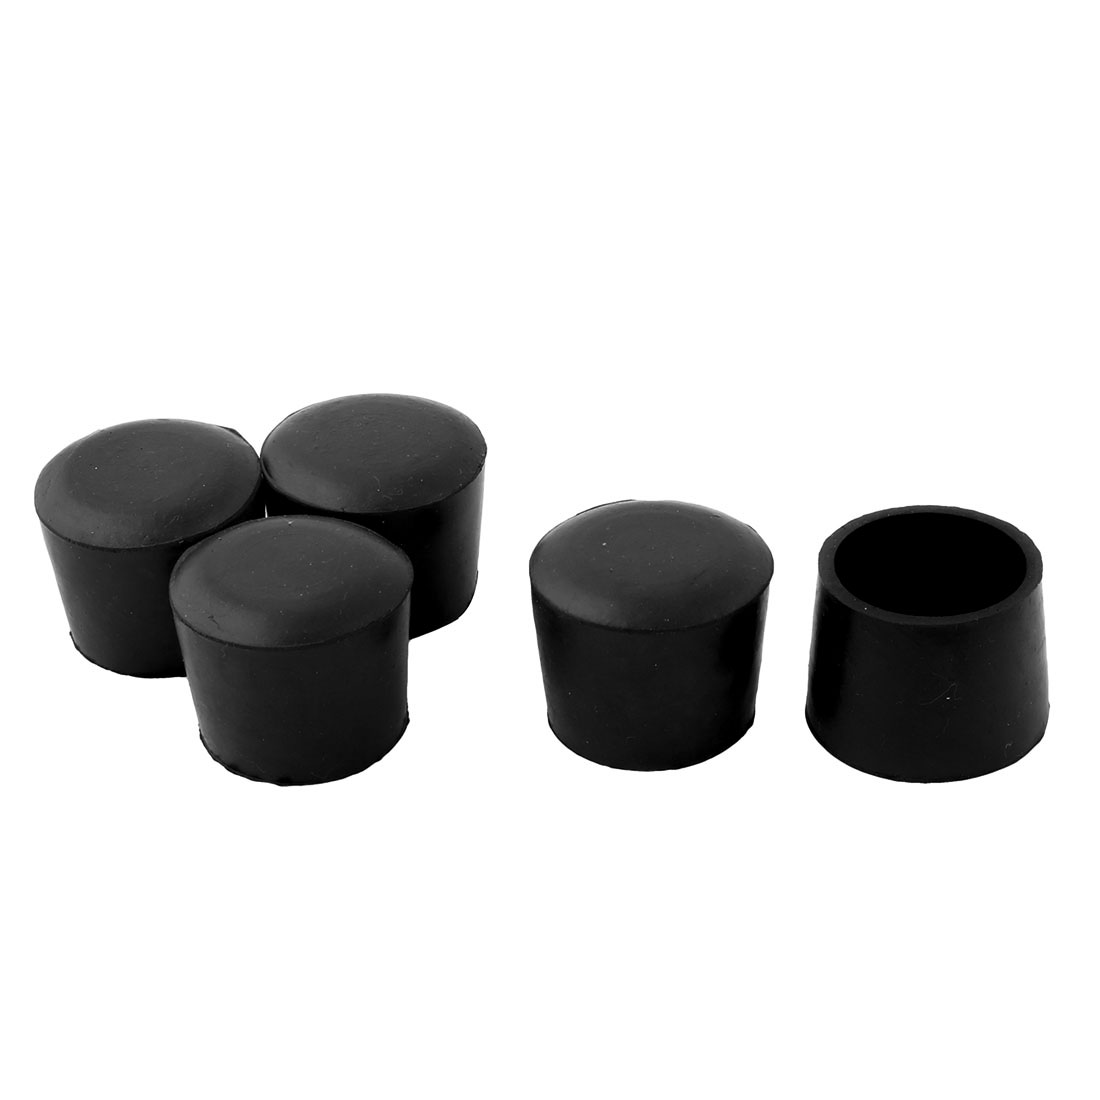 Furniture Chair Table 38mm Inner Dia Round Rubber Foot Covers 5 Pcs